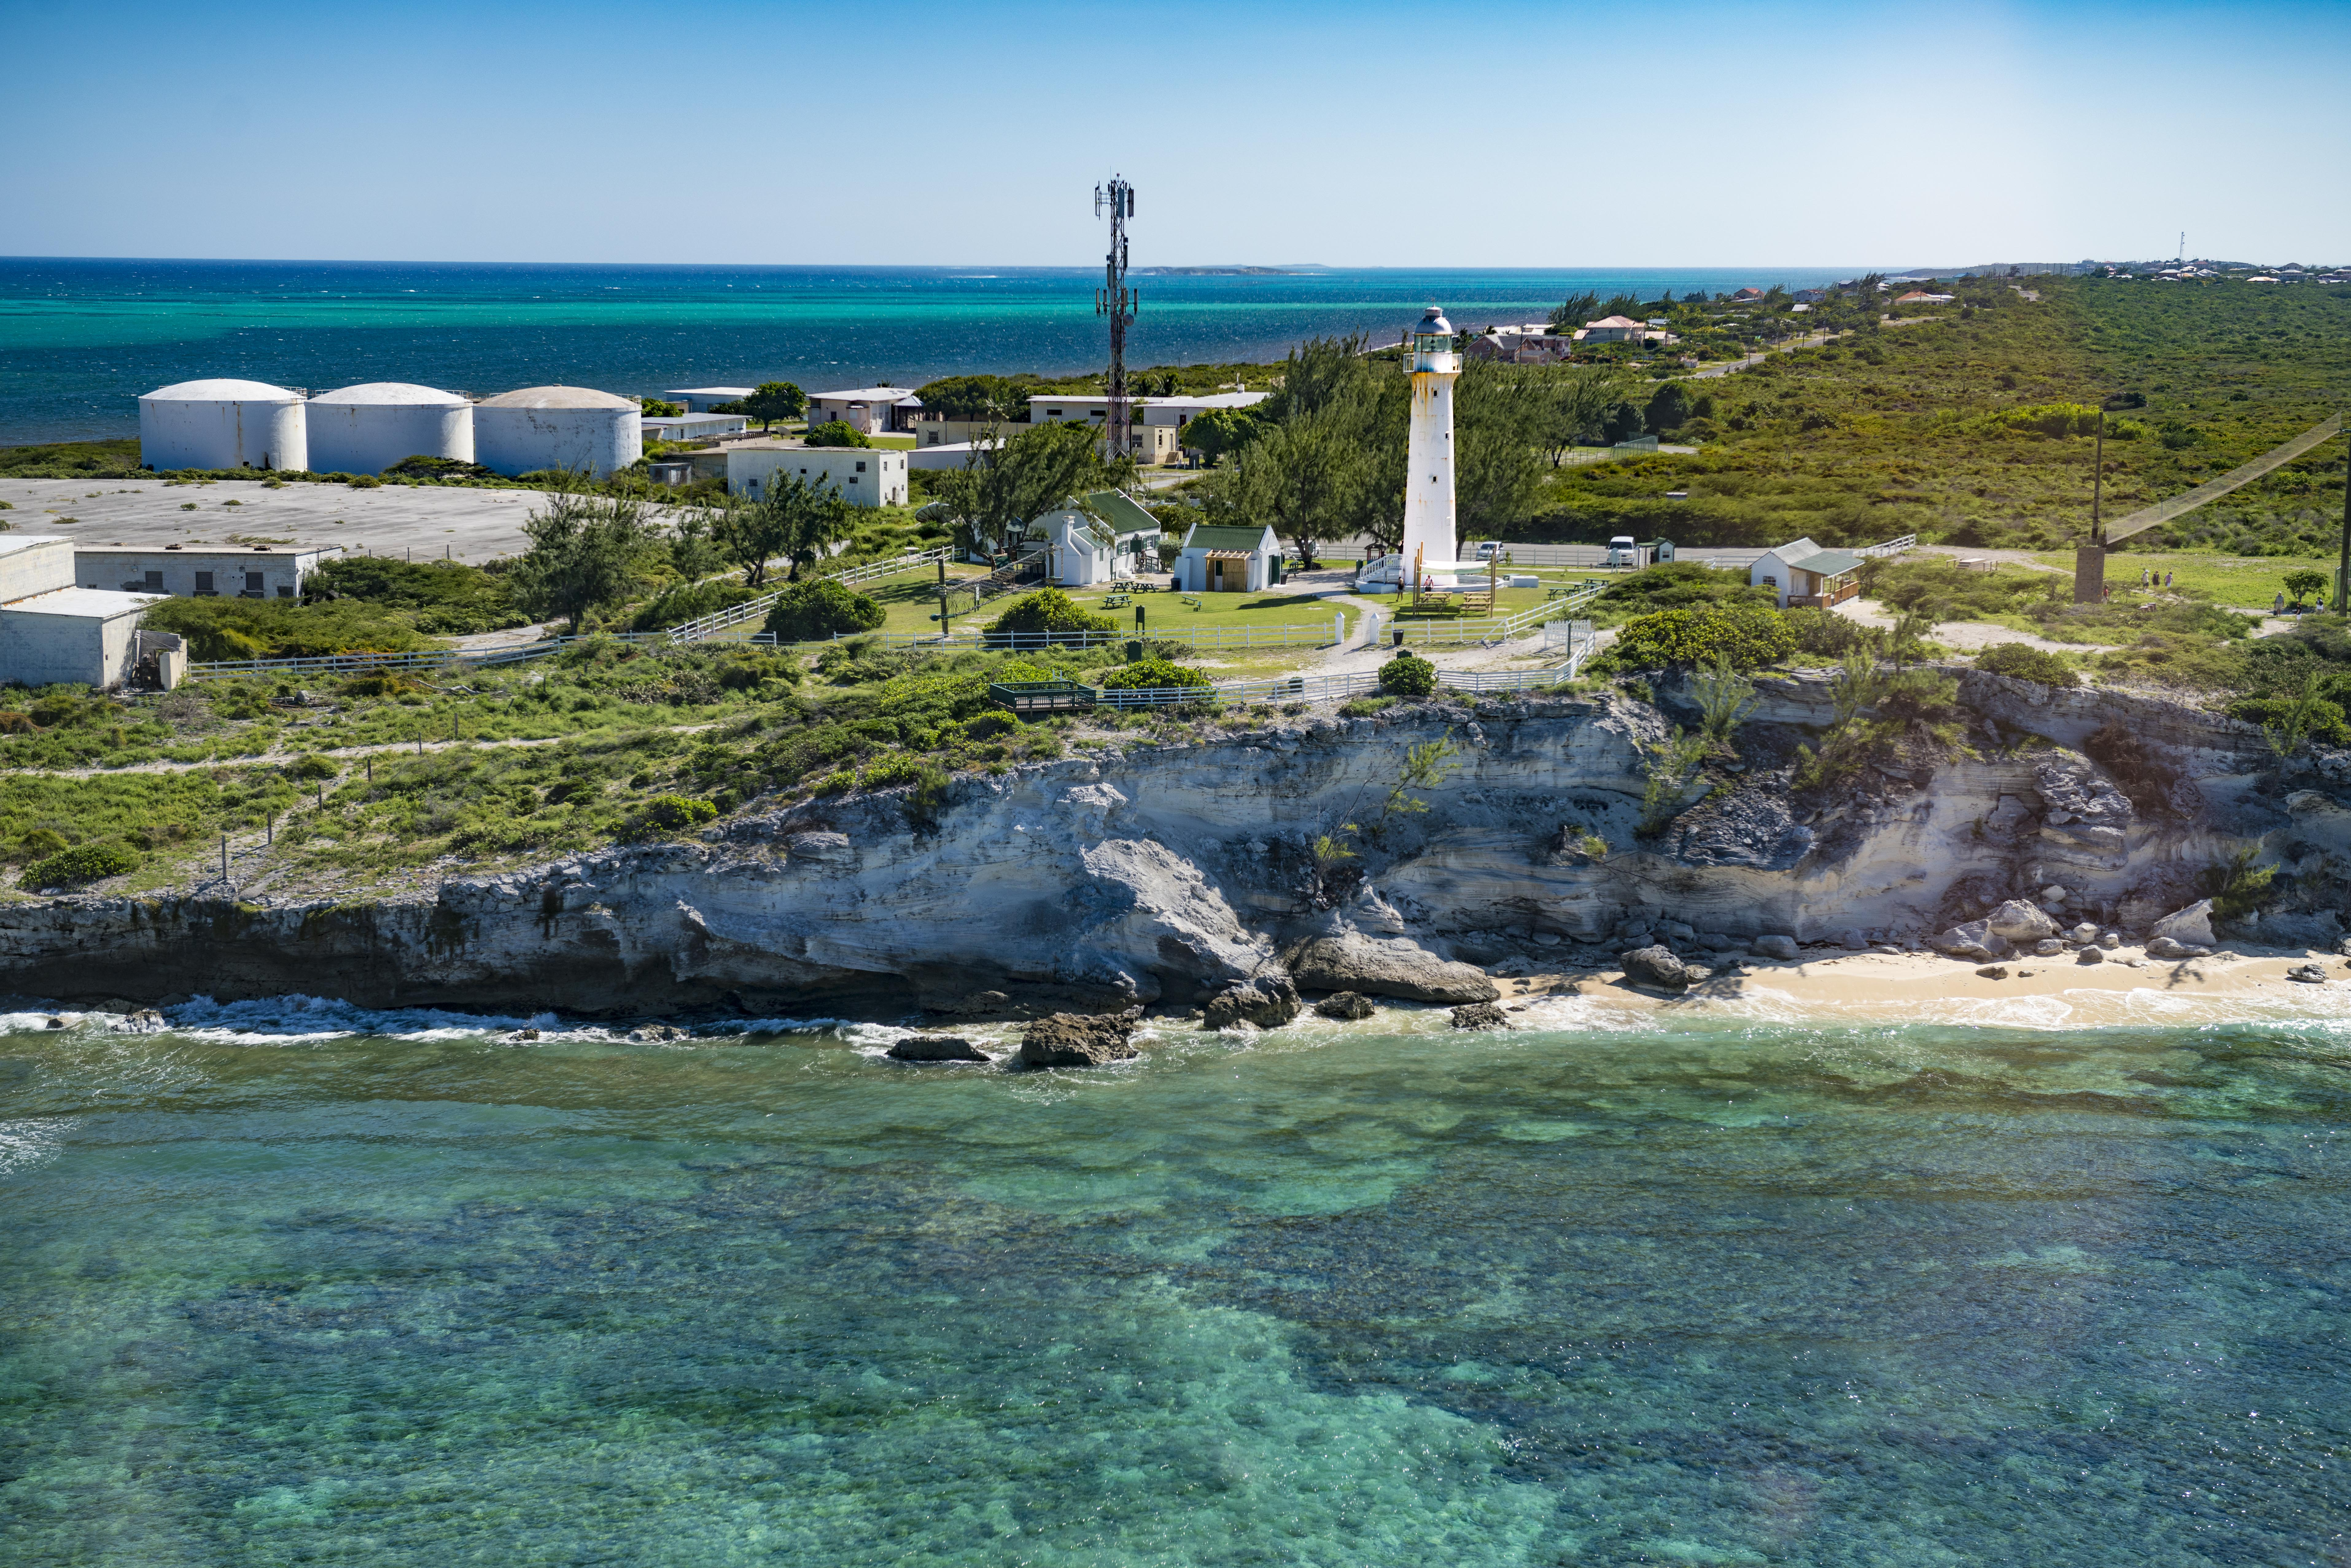 Grand Turk Island lighthouse and reef, Turks and Caicos Islands photographed by Tom Till